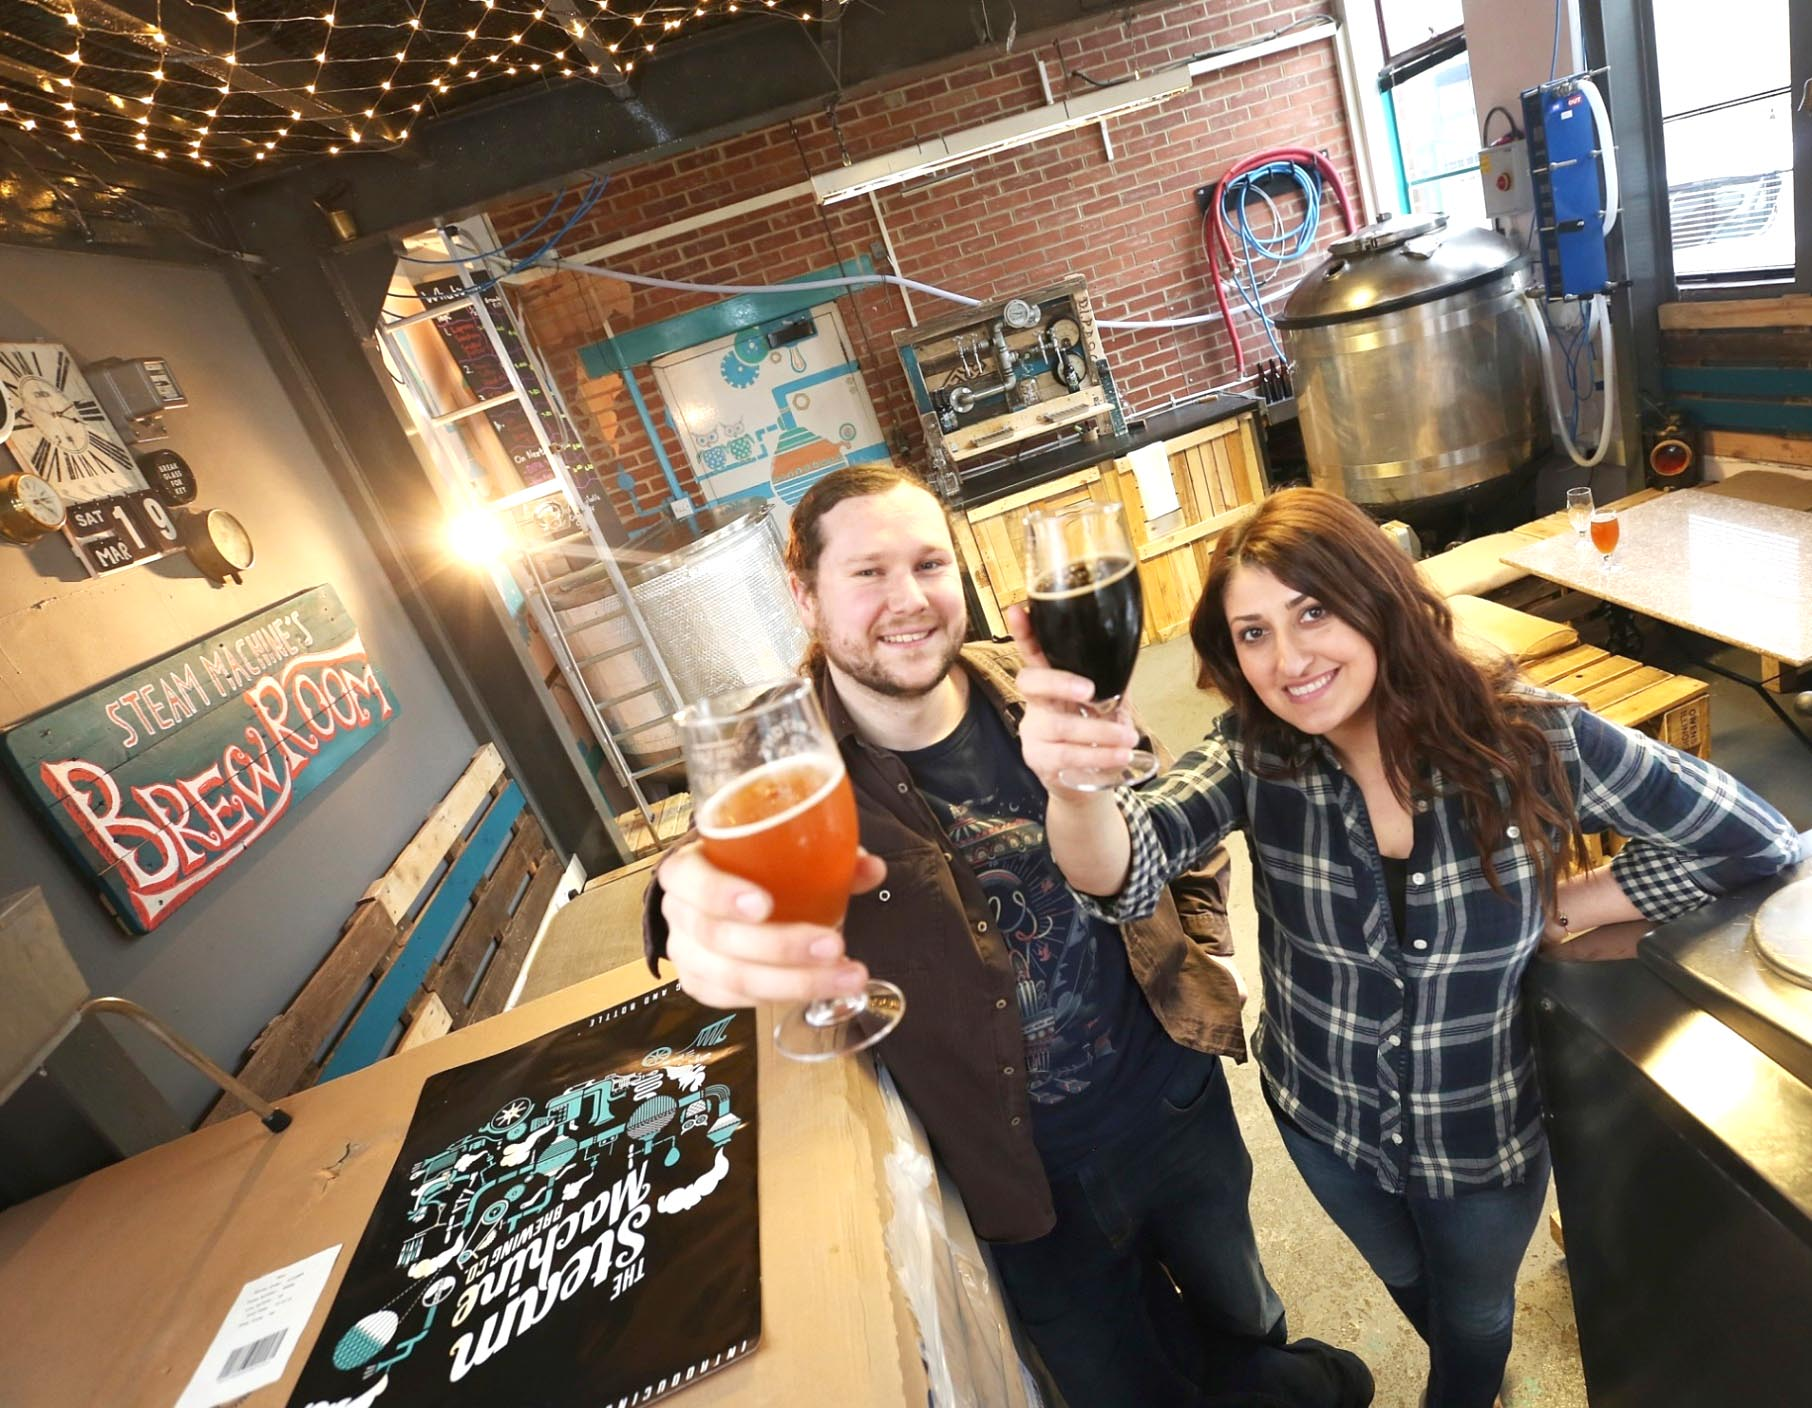 Aycliffe Brewers Feature the Science of Beer Making